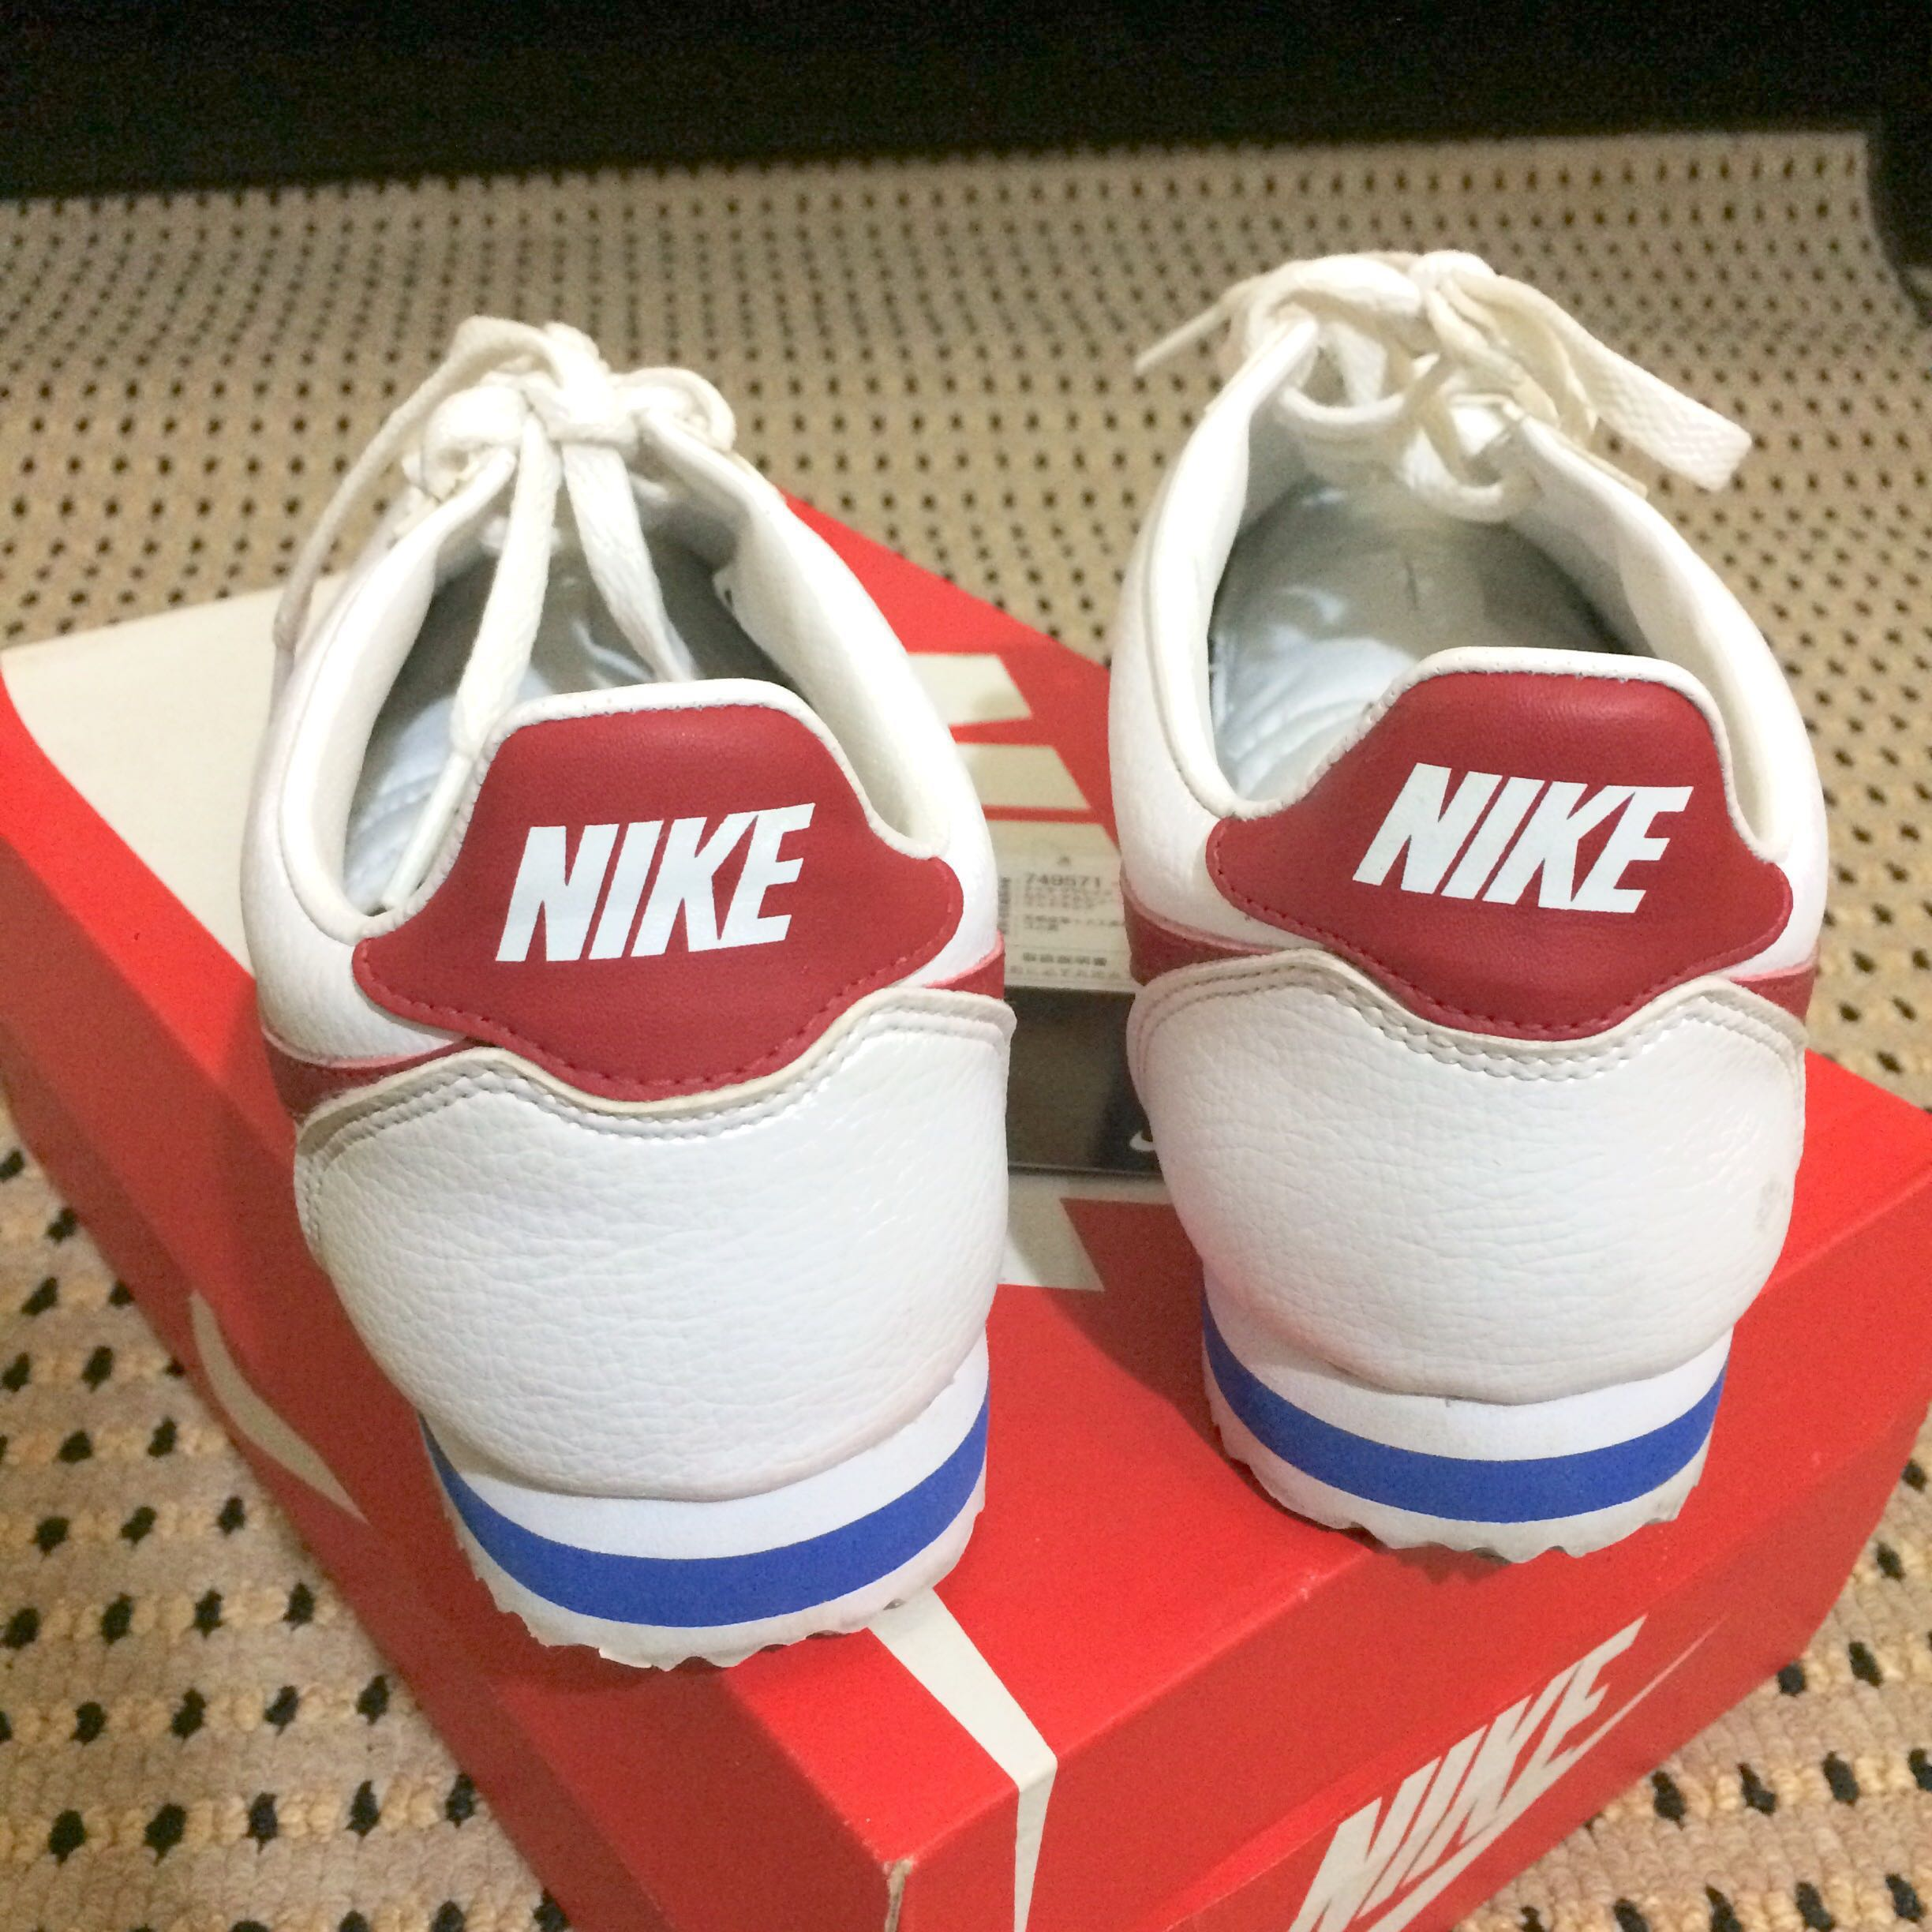 Nike Cortez Classic Leather Forrest Gump Size 43 Original Mens Fashion Footwear Sneakers On Carousell